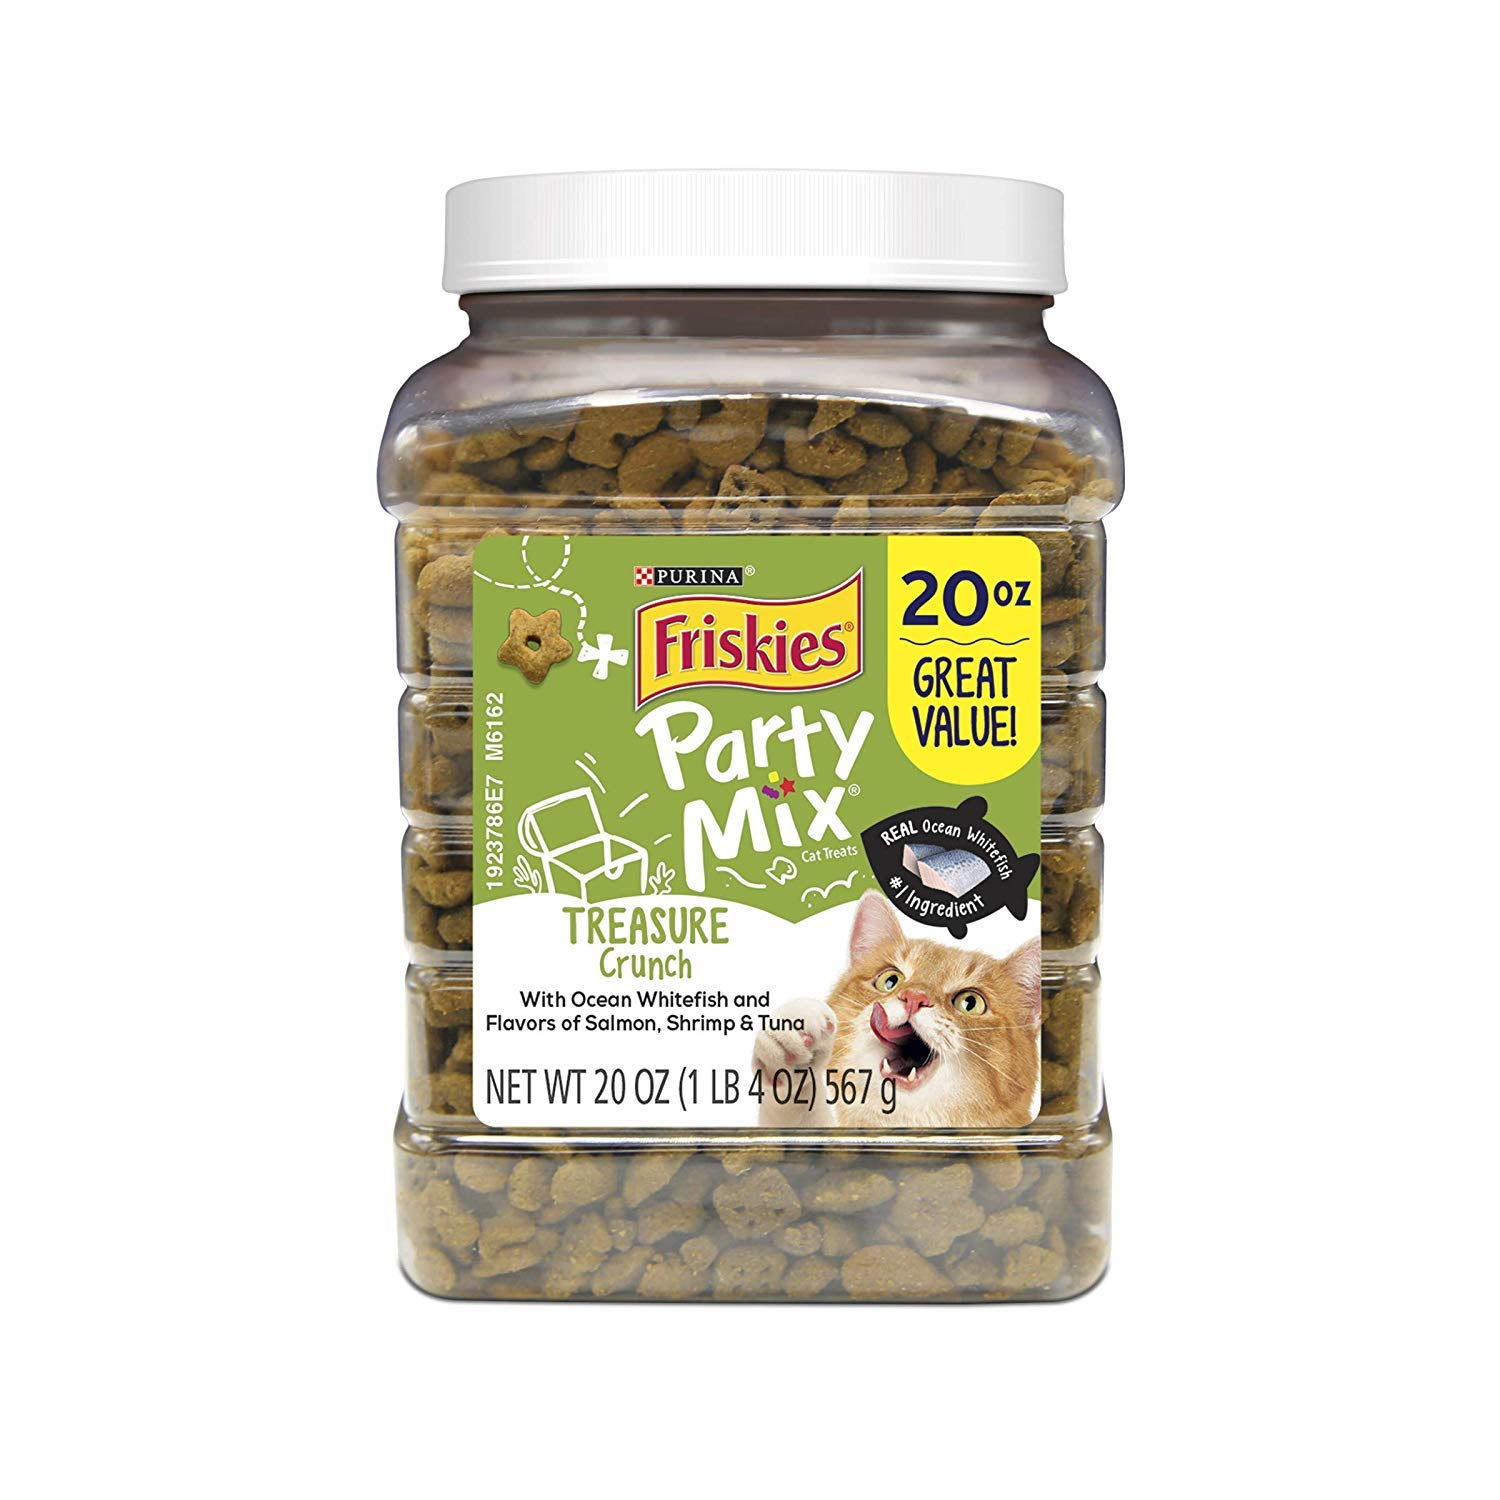 Purina Friskies Party Mix Treasure Island Crunch, Salmon, Shrimp, and Tuna Flavors, 20-Ounce Canister by Purina Friskies